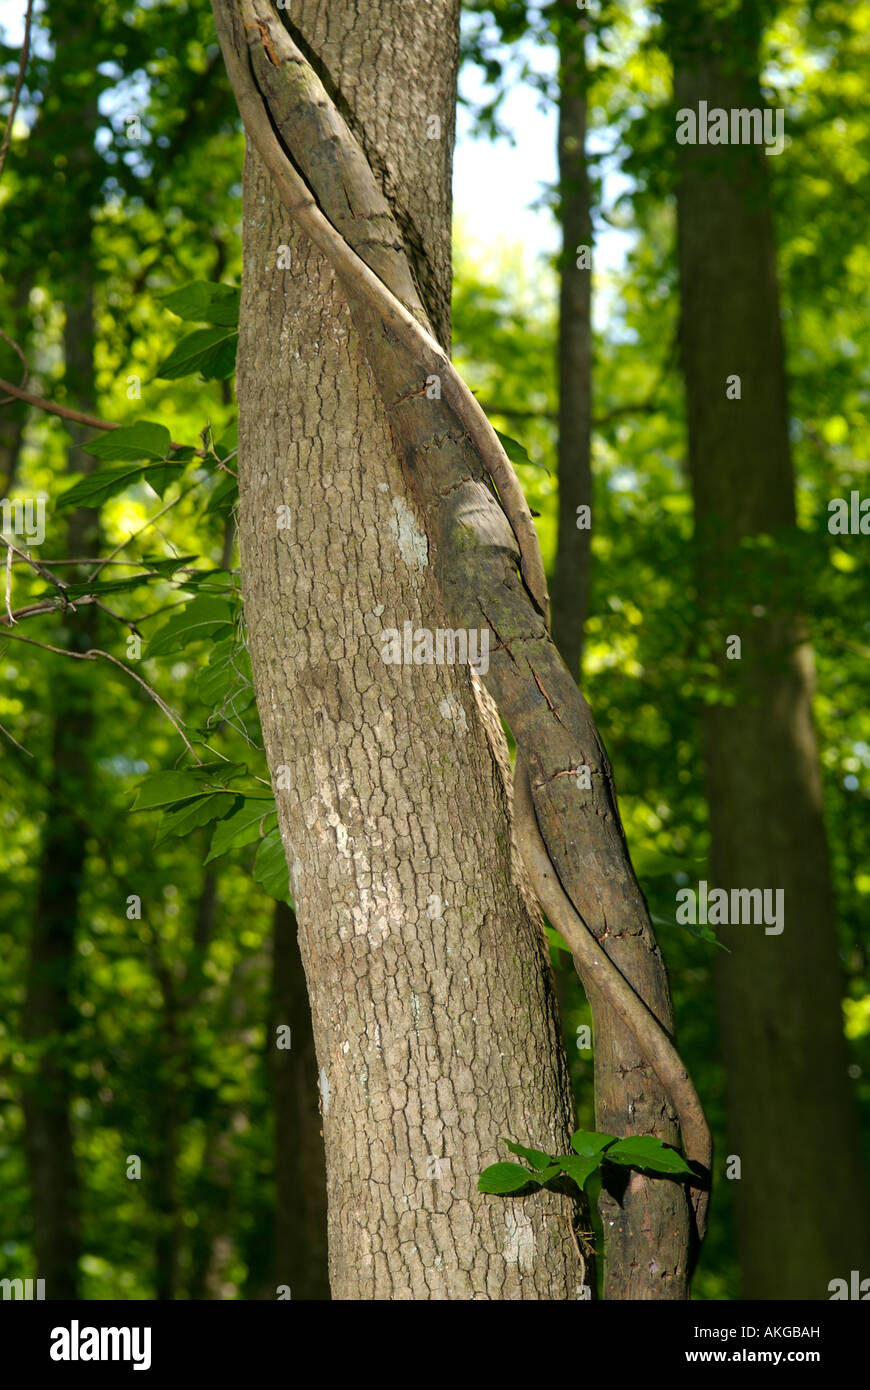 Trunk of a Bald Cypress (Taxodium distichum) with a vine in Congaree National Park, South Carolina, United States Stock Photo